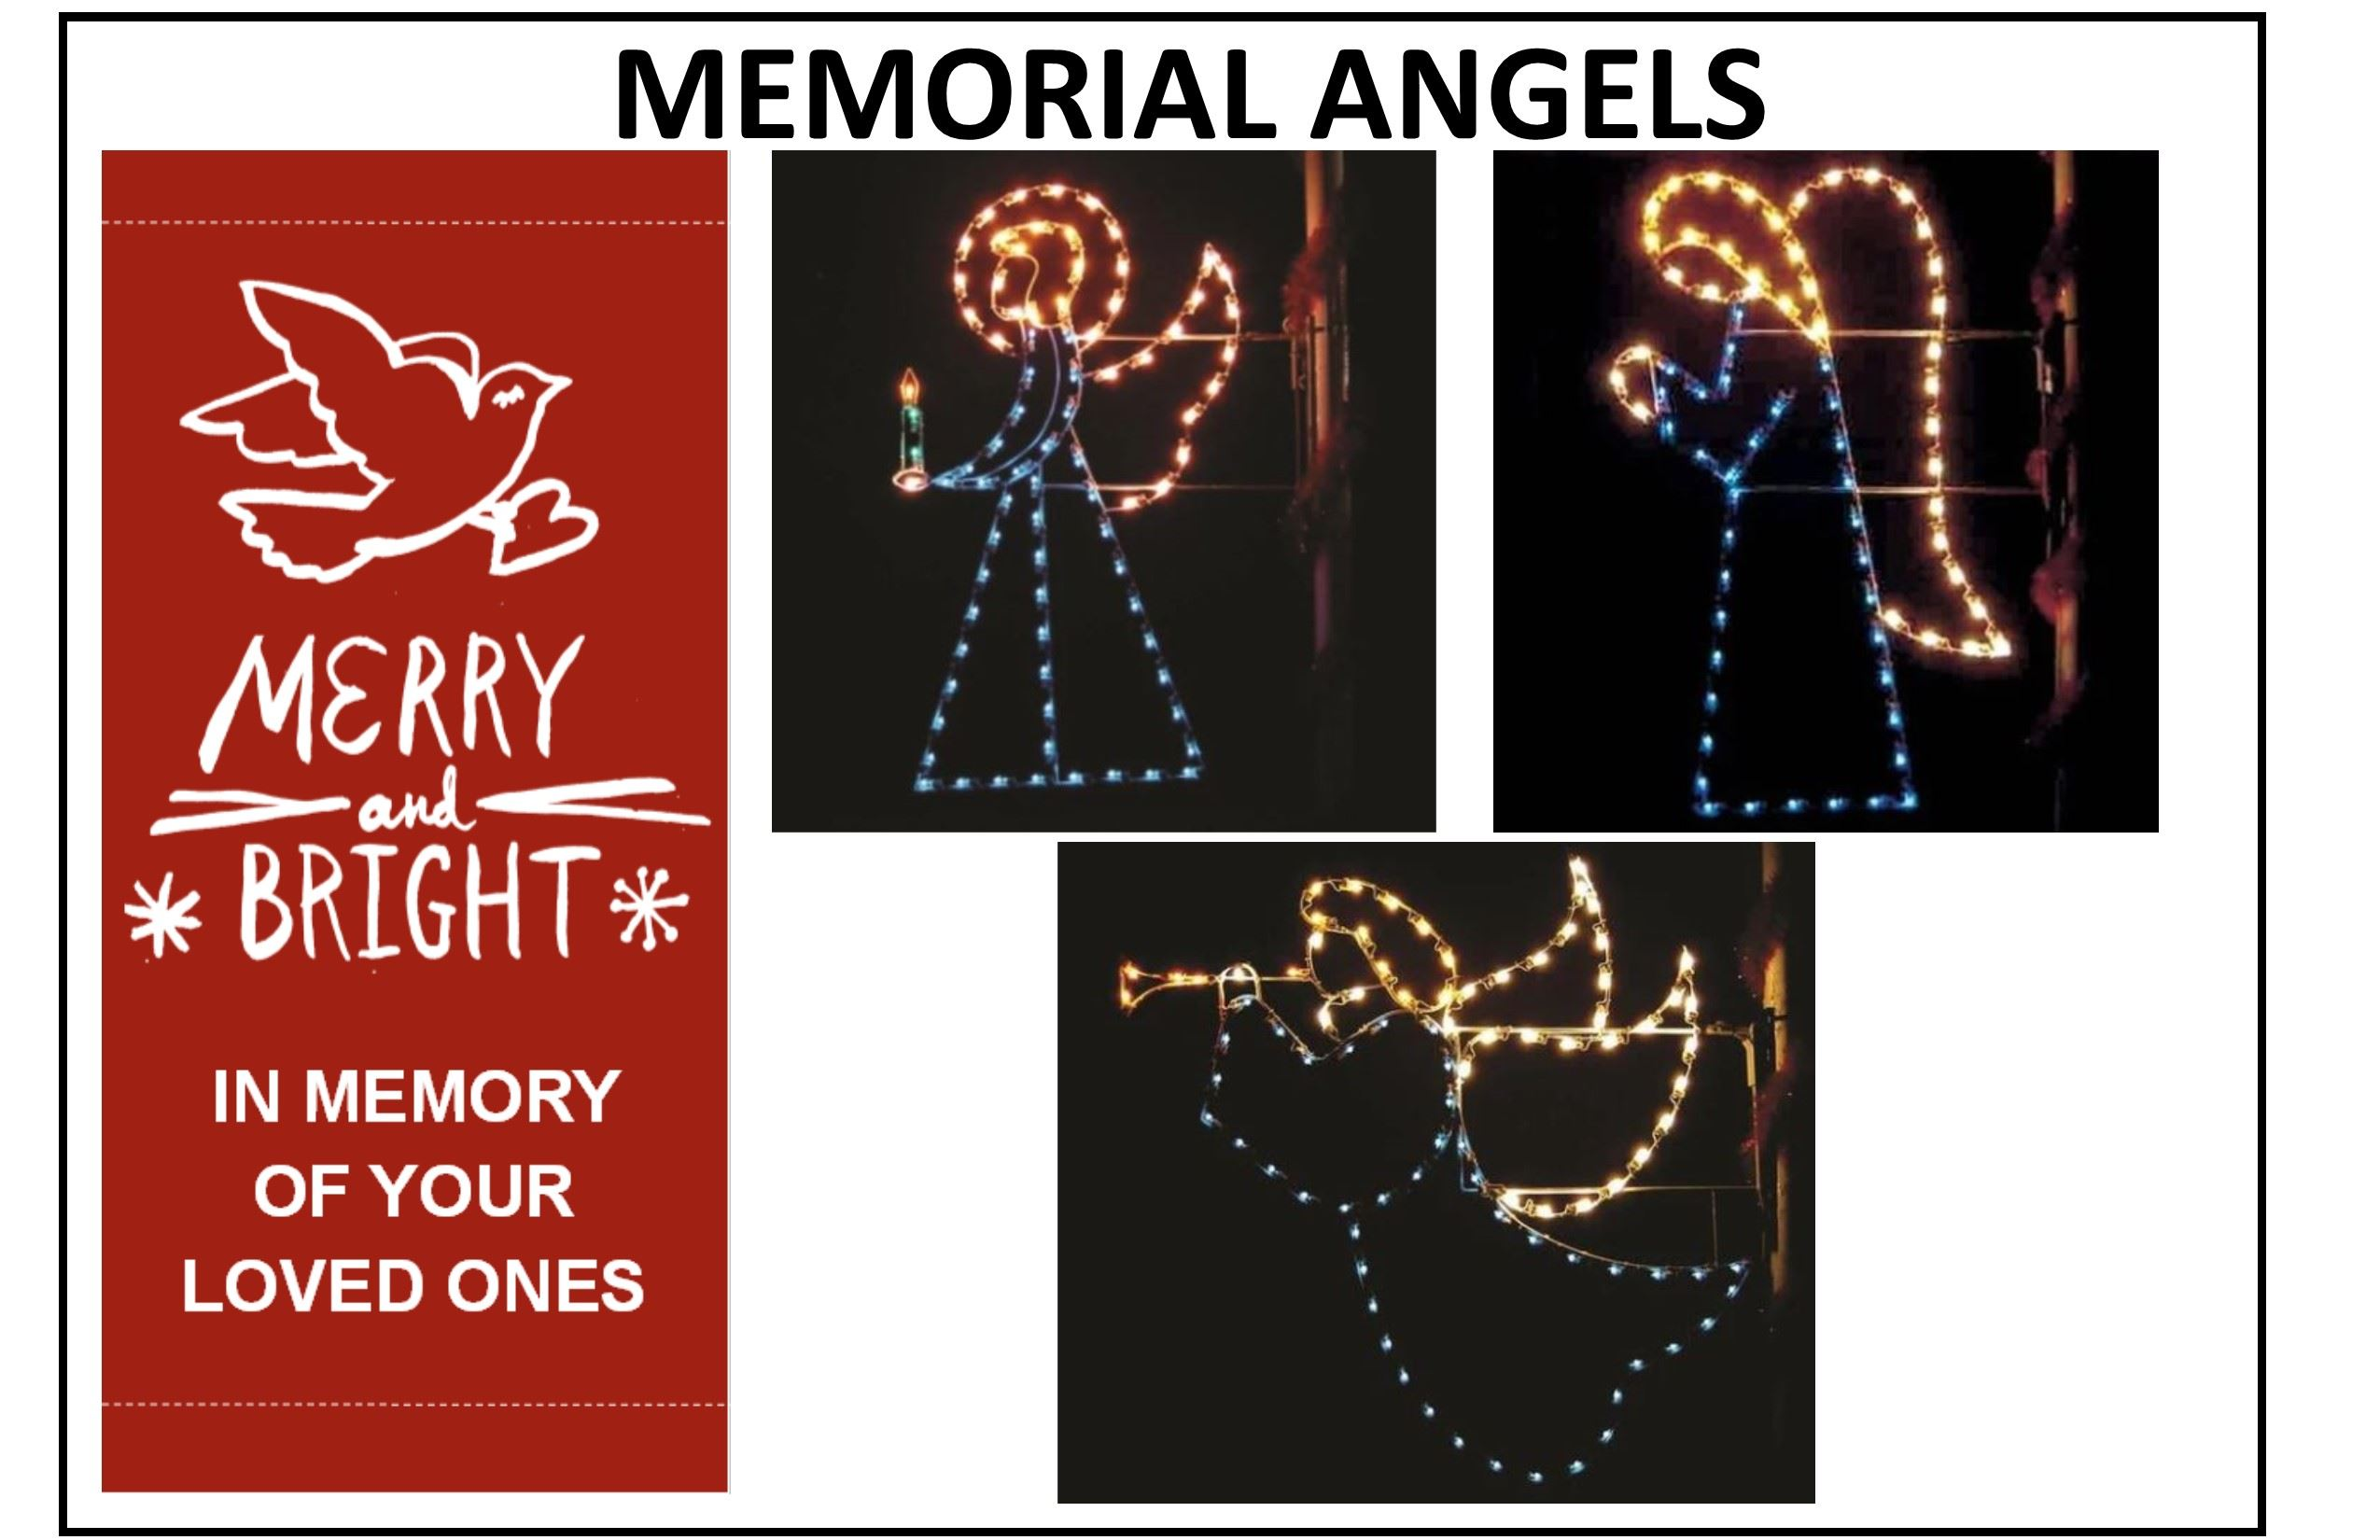 Memorial Angels Graphics